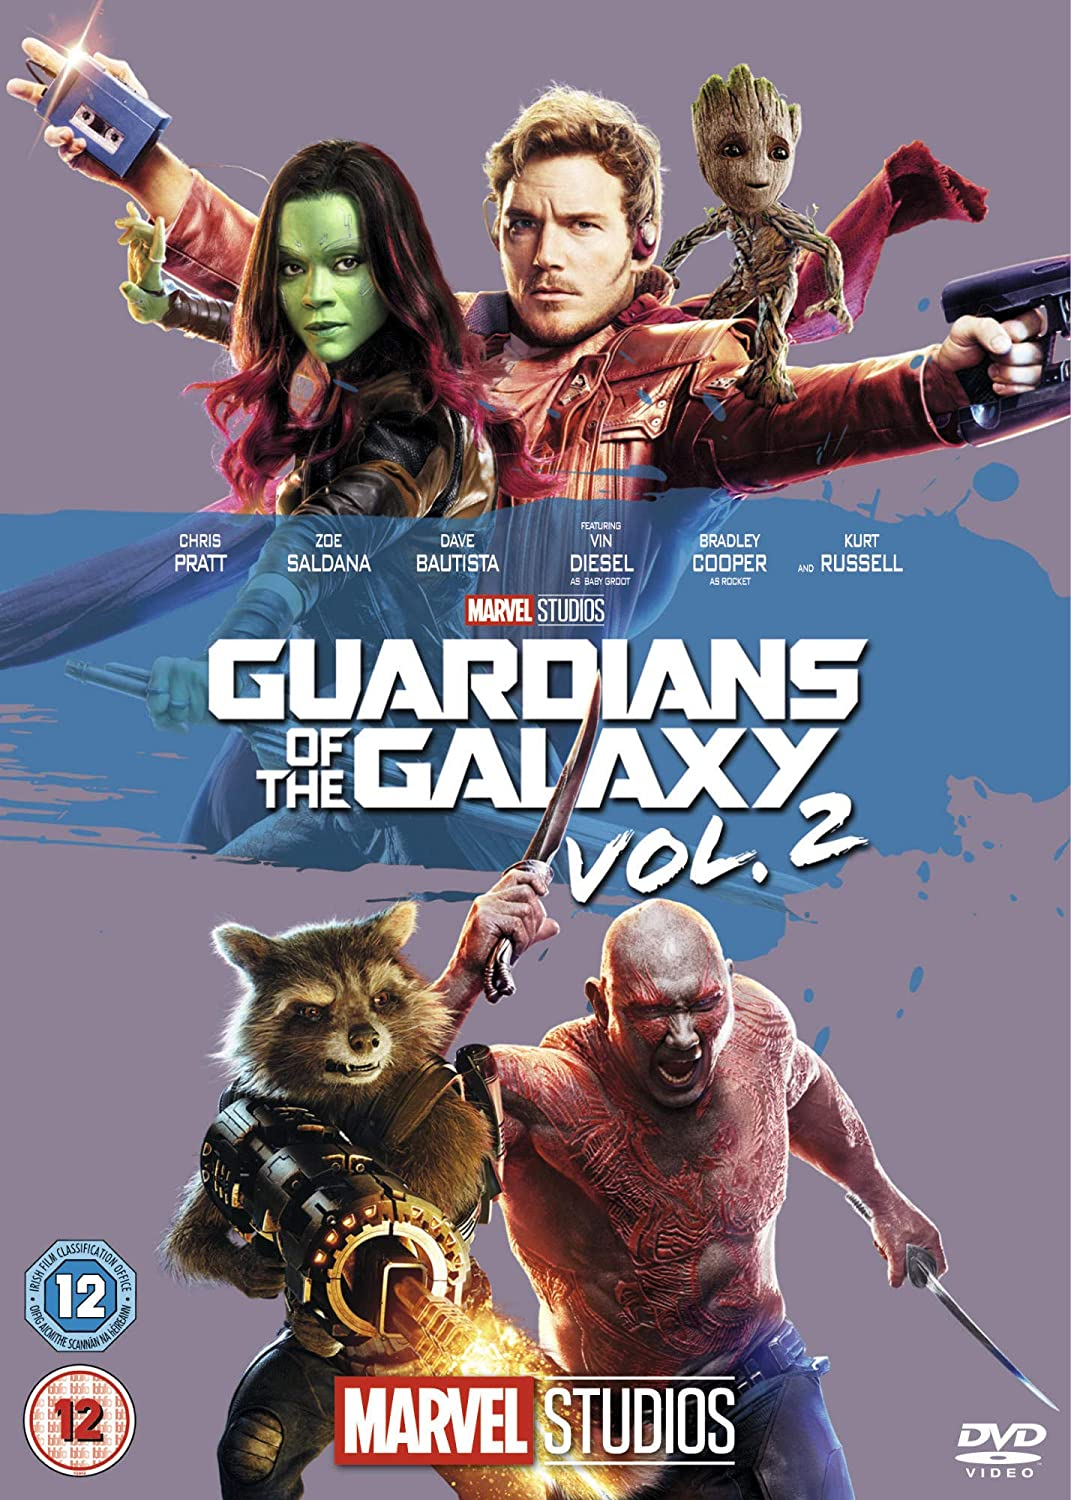 d845618a Guardians of the Galaxy Vol. 2 [DVD] [2017]: Amazon.co.uk: Chris Pratt, Zoe  Saldana, Dave Bautista, Vin Diesel, Bradley Cooper, Michael Rooker, Karen  Gillan ...